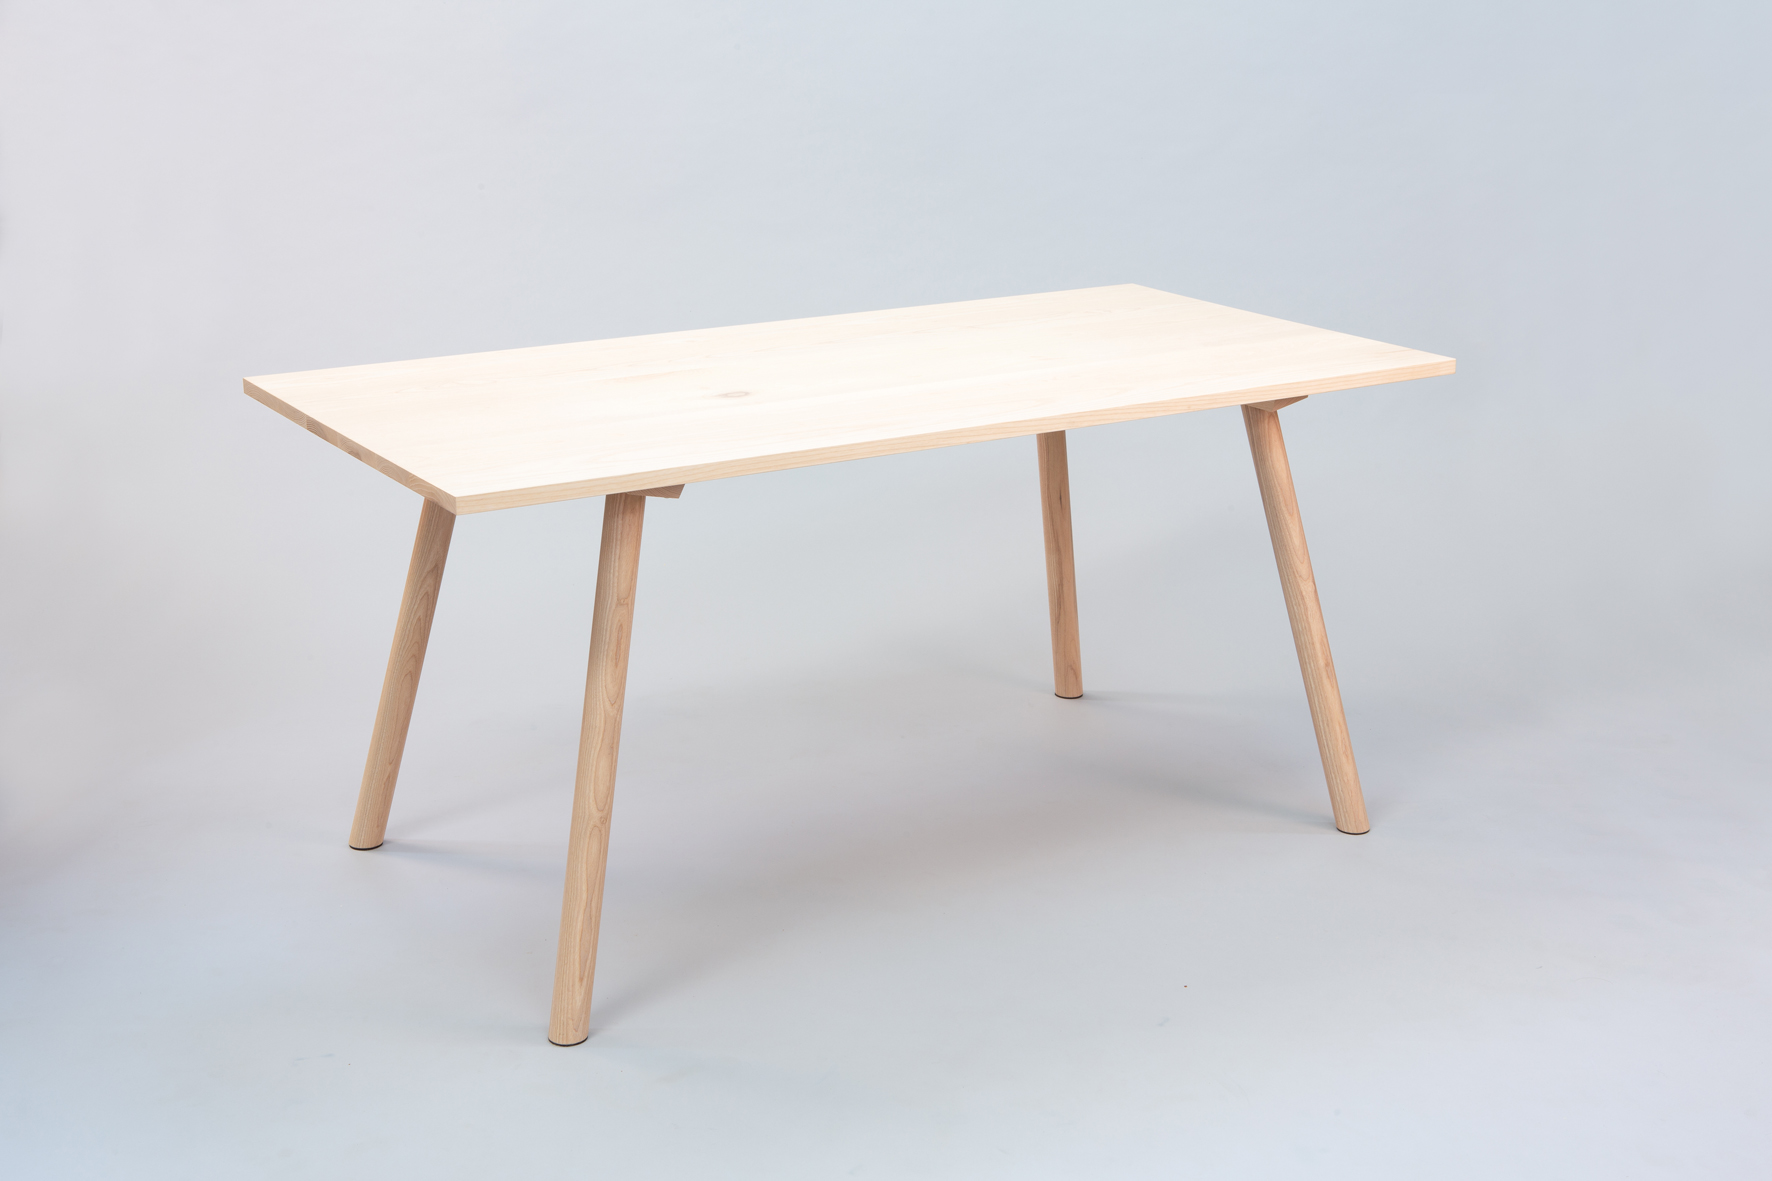 Cùram table 3 small.jpg